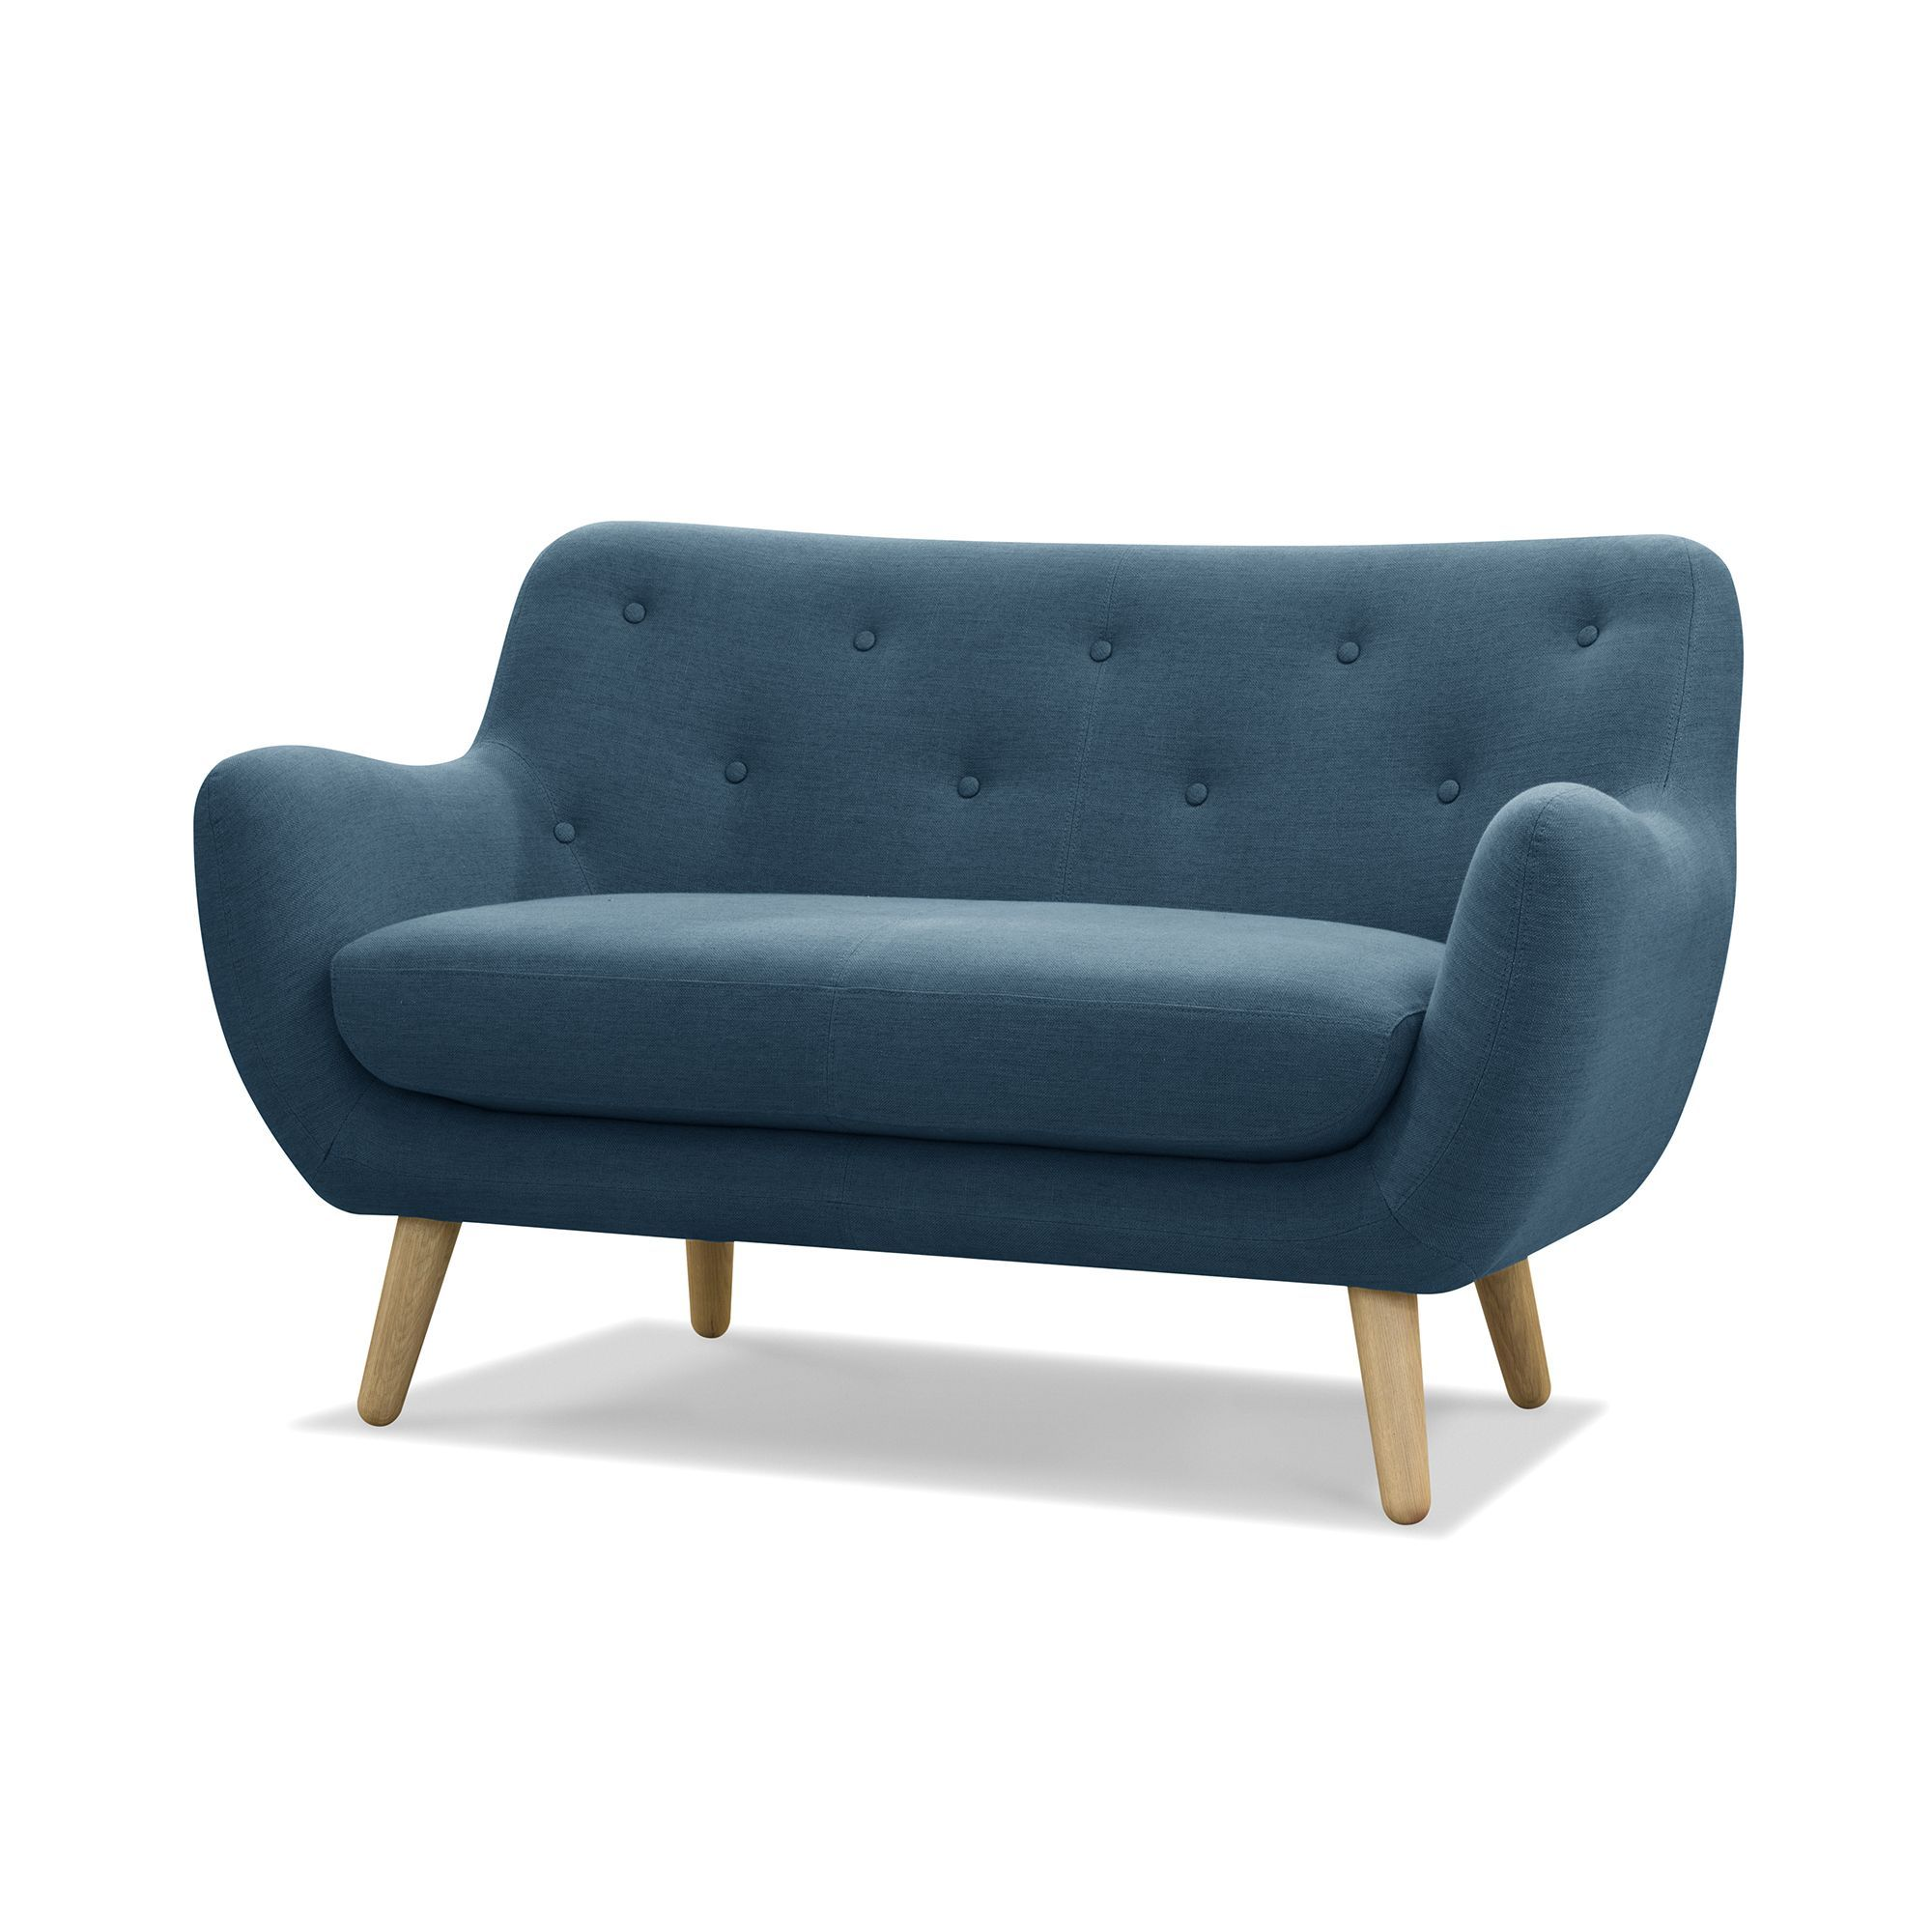 Alinea Chaise Blanche Interesting Canap Places Esprit Seventies En Tissu Bleu